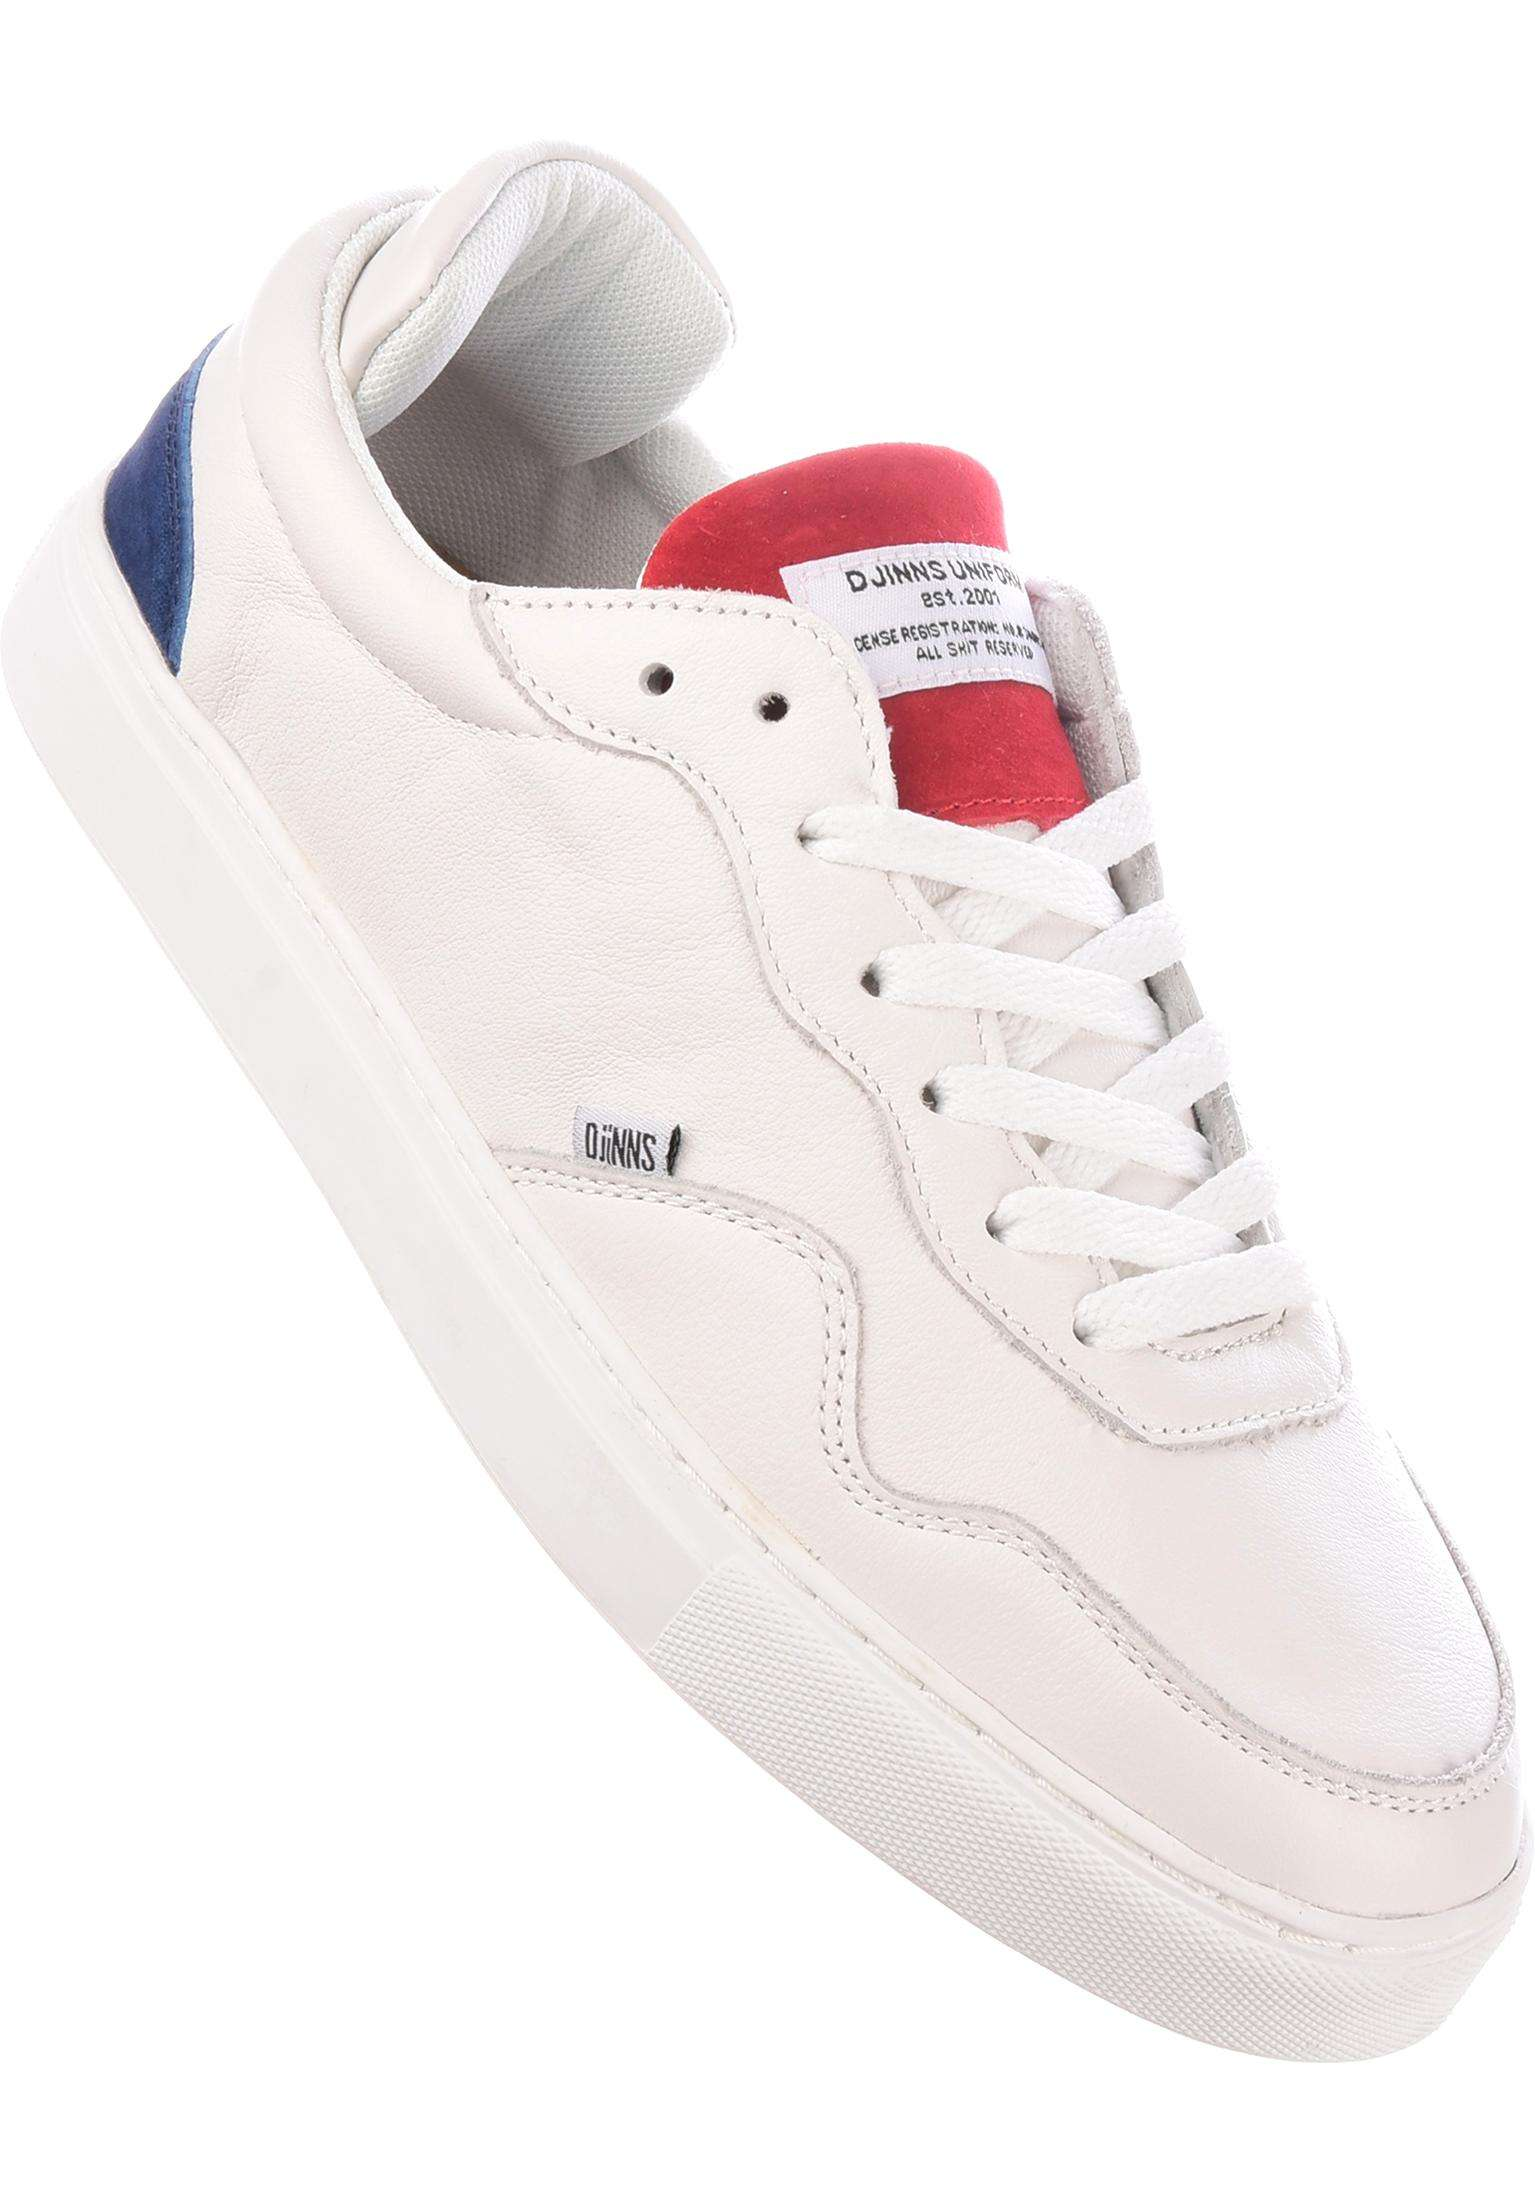 3a784671f Awaike T-Sport Djinns All Shoes in white-red-blue for Women | Titus